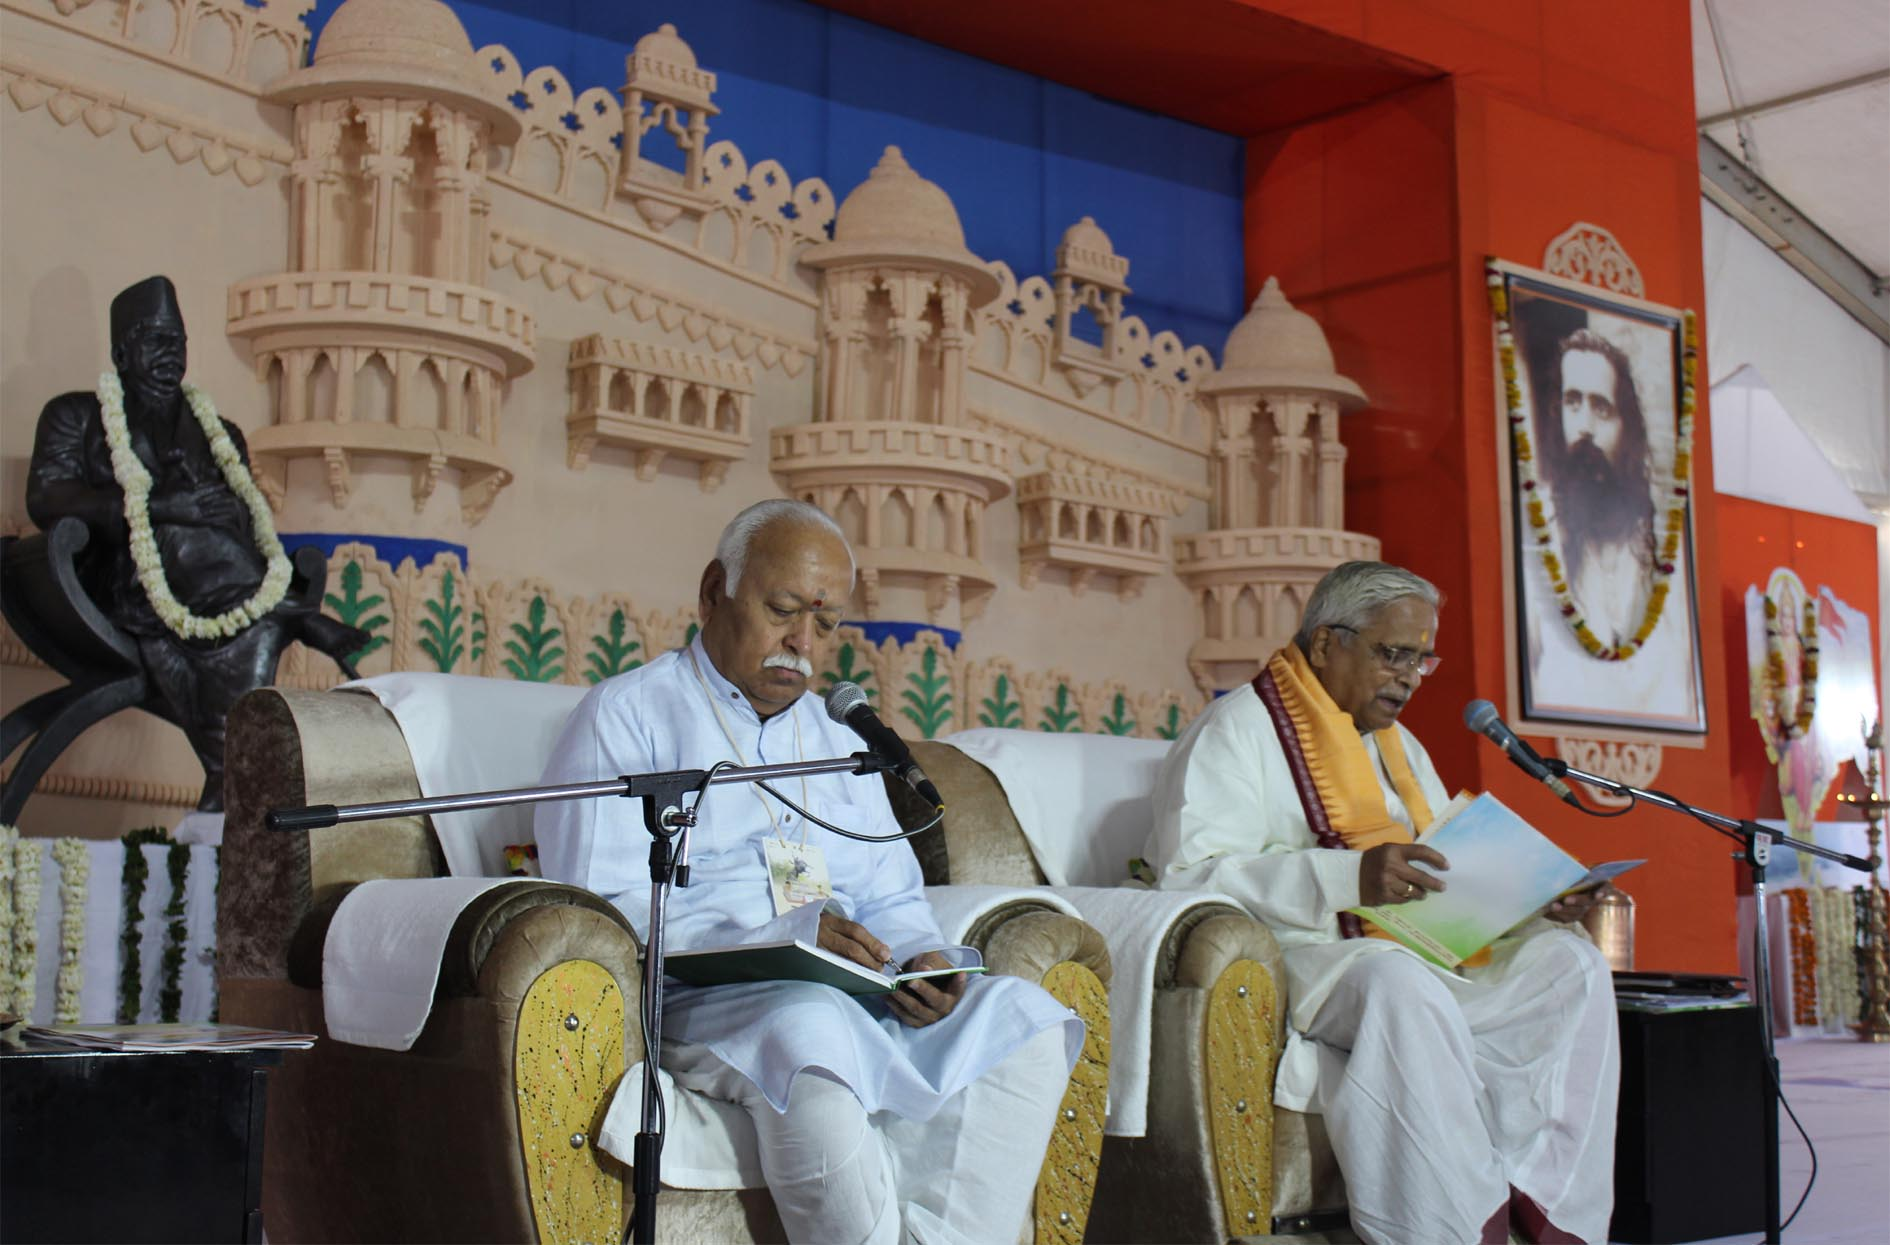 Annual report of RSS presented by RSS Sarkaryavah at ABPS 2019, Gwalior